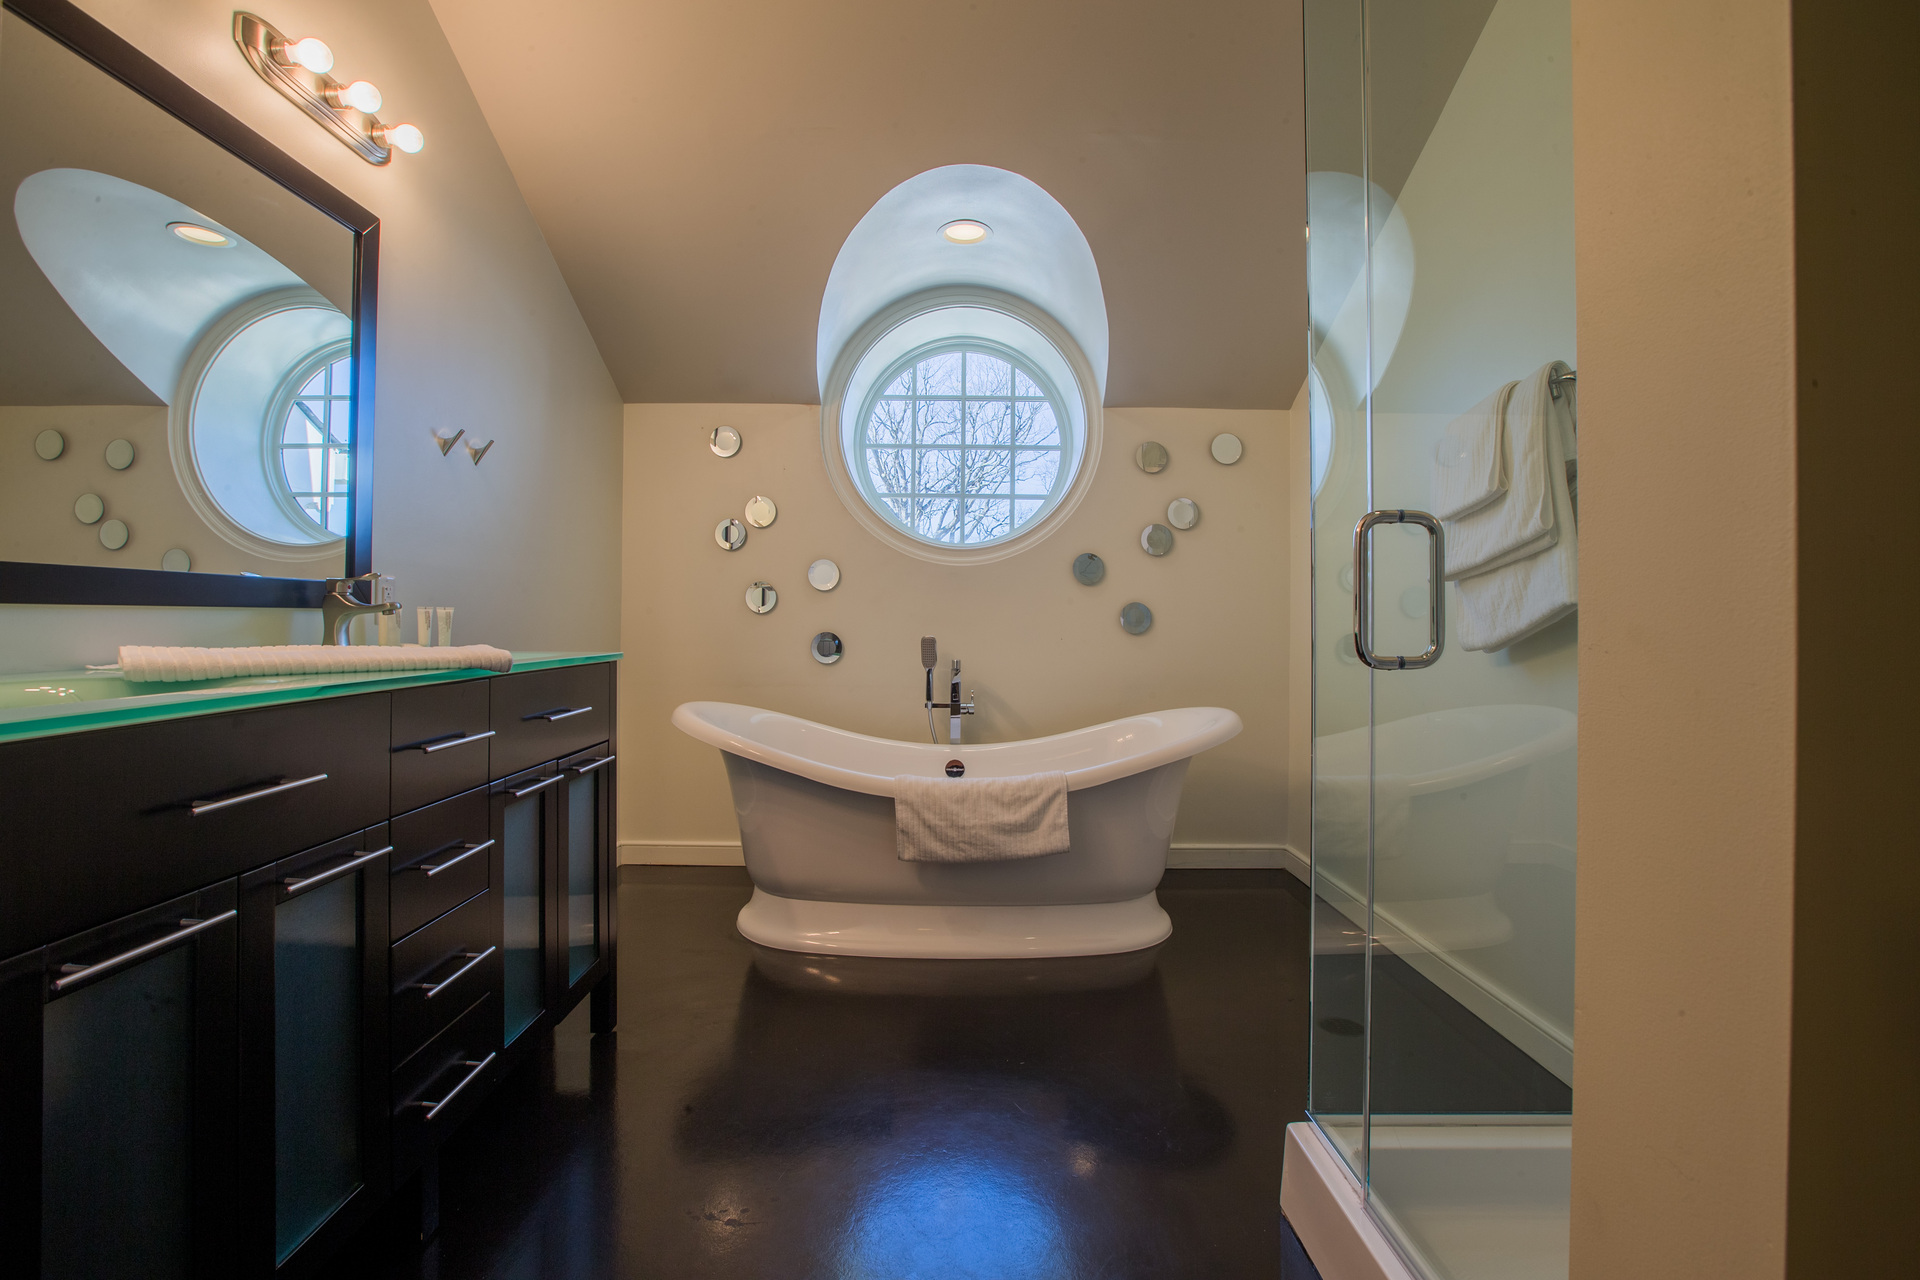 Take a relaxing soak in this freestanding tub or rinse off in the glass shower.    No need to worry about hearing the other hotel guests while soaking in the tub--the sound-reducing drywall installed in each of the rooms creates the perfect sound buffer between rooms.